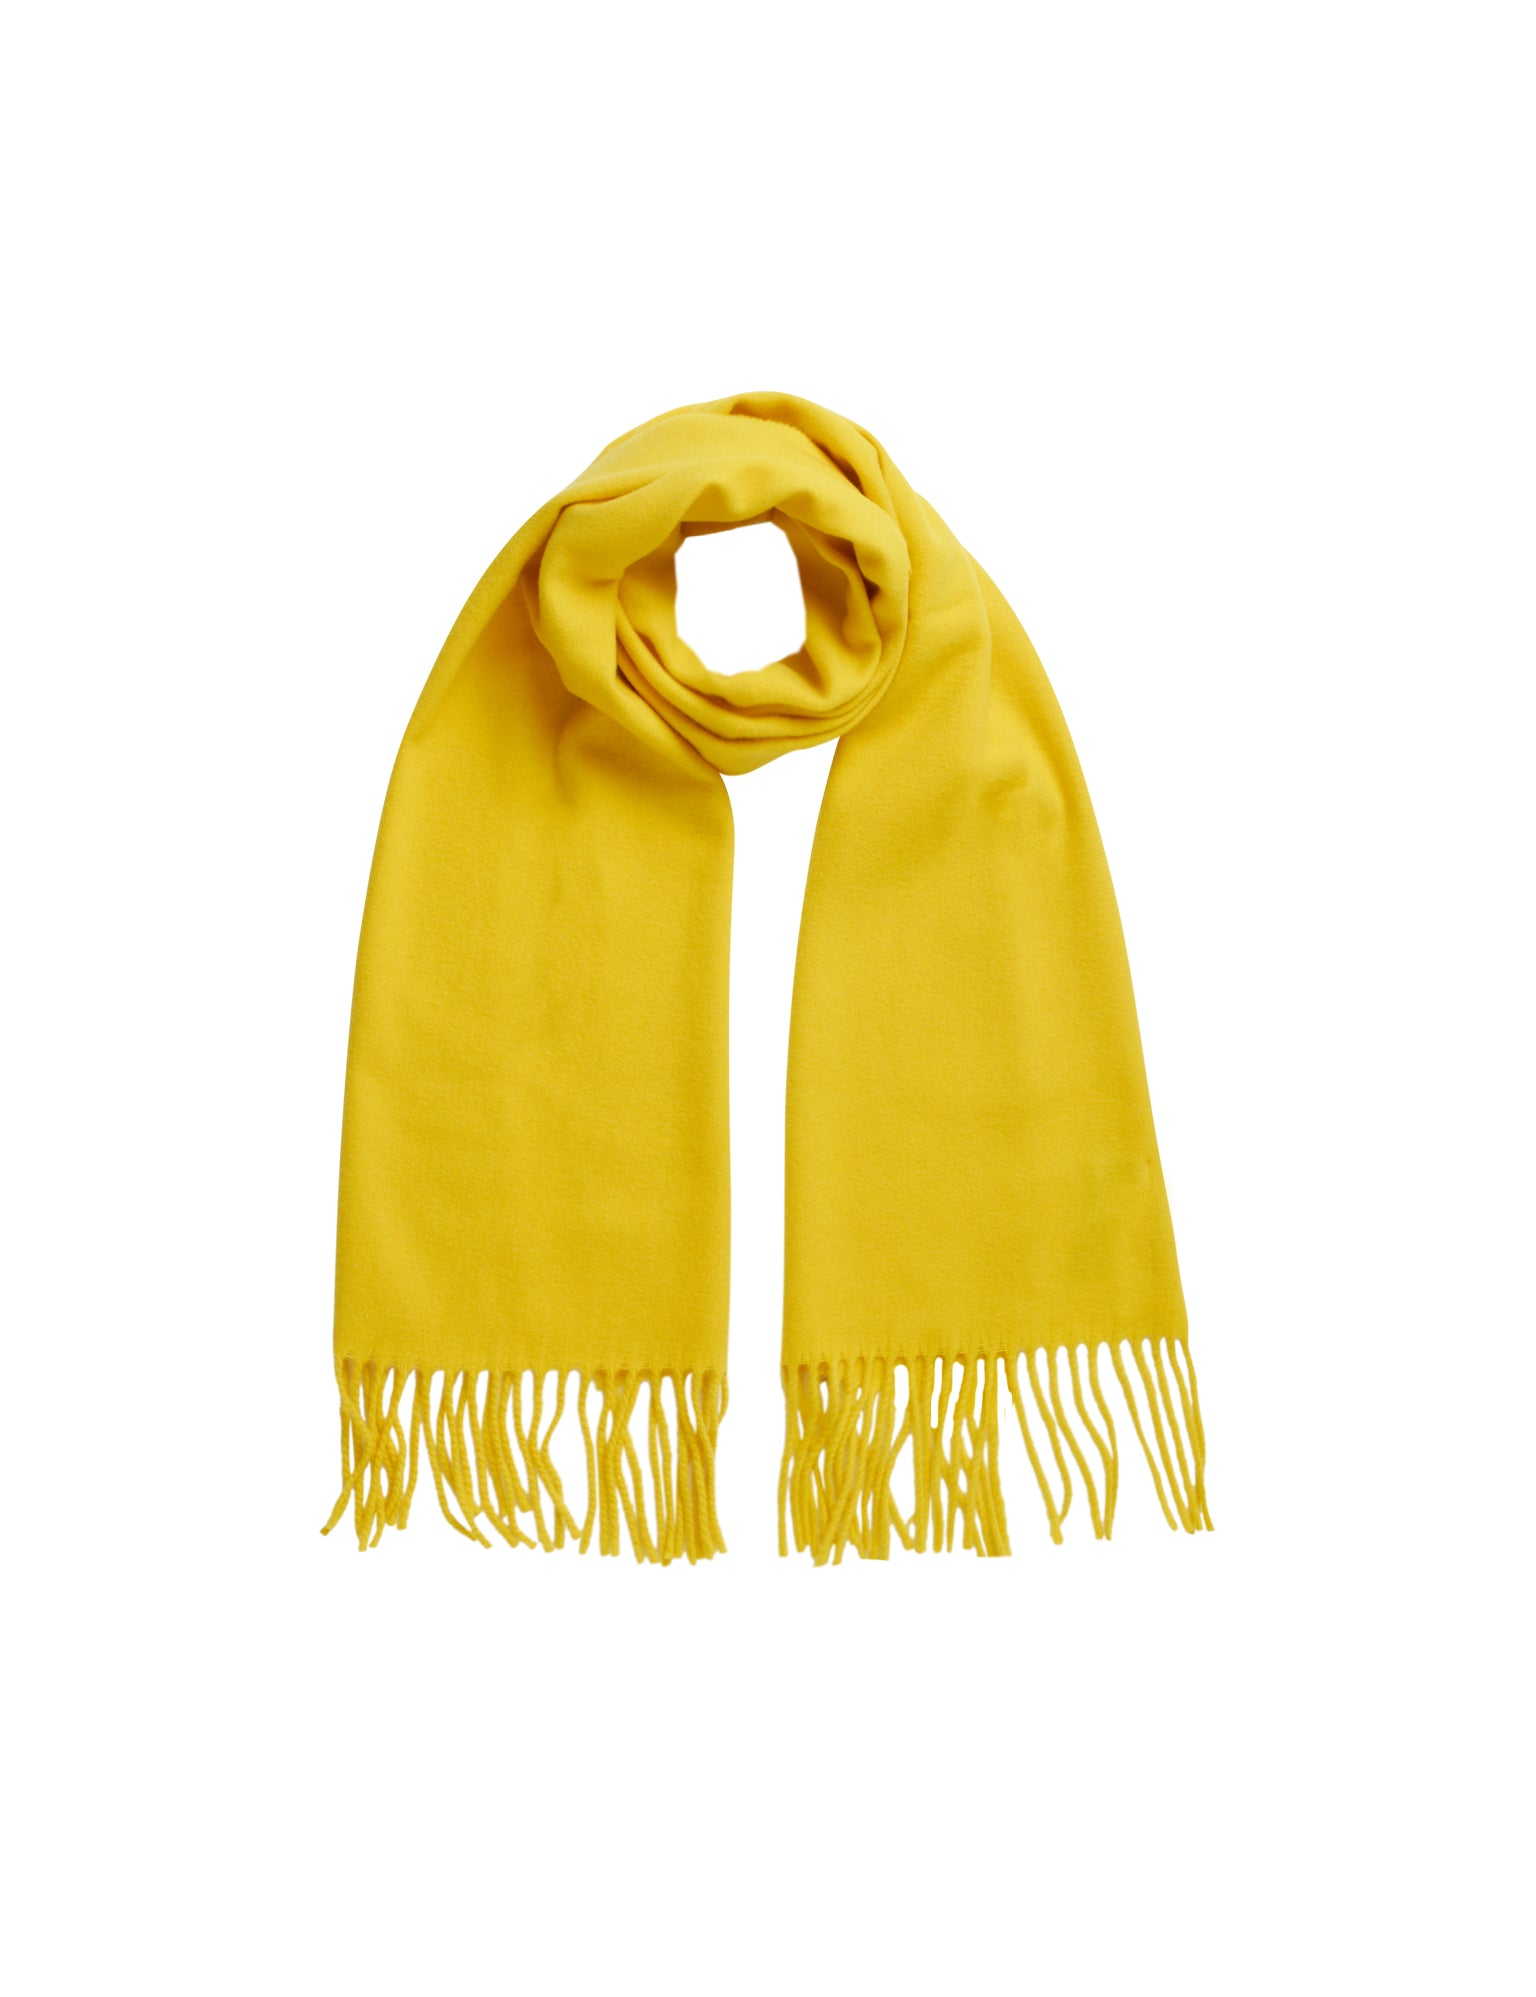 Laine Wool Amber, Yellow